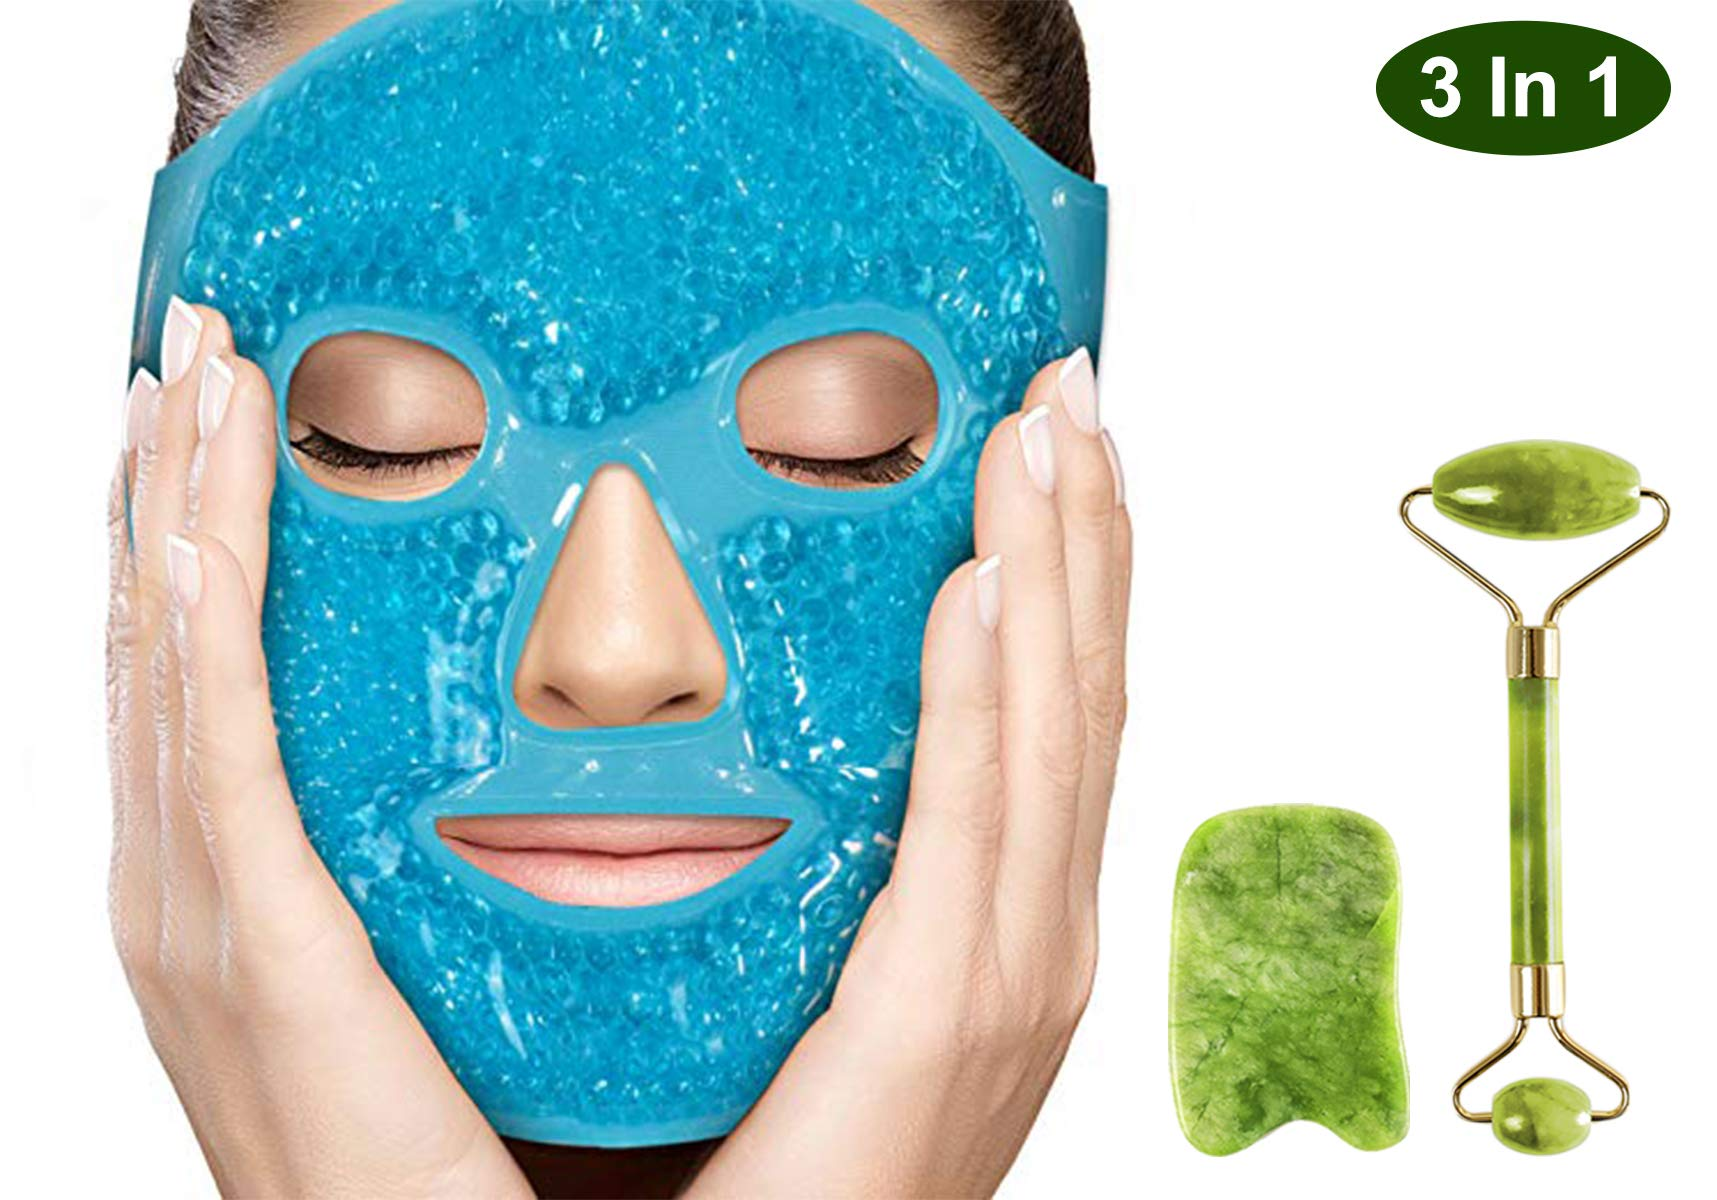 Puffy Eyes Gel Pack Mask with Jade Roller and Gua Sha Tool,100% Real Ficial Ice Jade Roller Anti Wrinkle Mask Therapy Pack Reusable Large for Face & Eye Puffiness Migraine Relief Massager Treatment